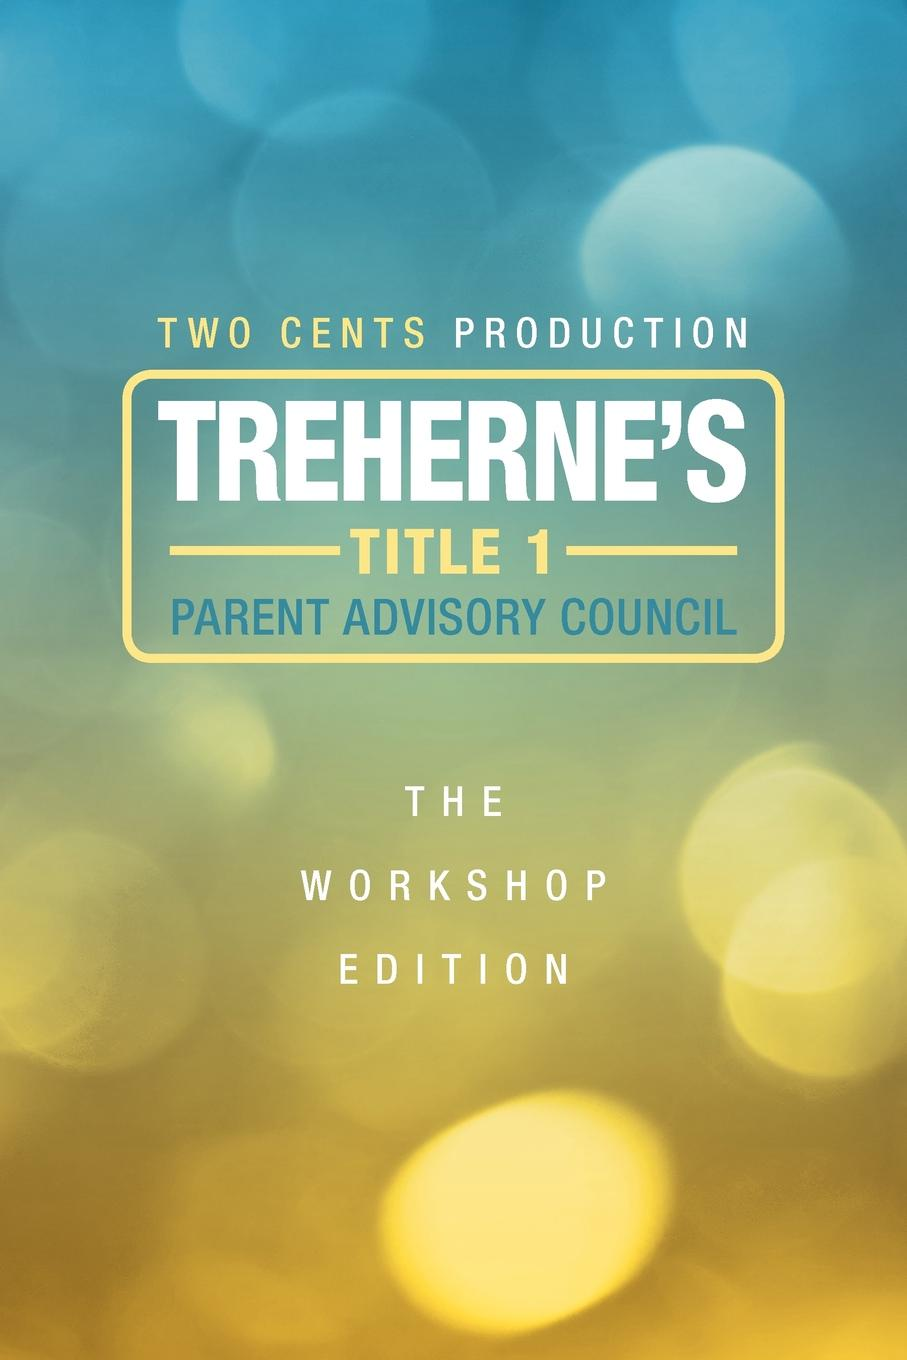 Two Cents Production Treherne's Title 1 Parent Advisory Council. The Workshop Edition devil s workshop